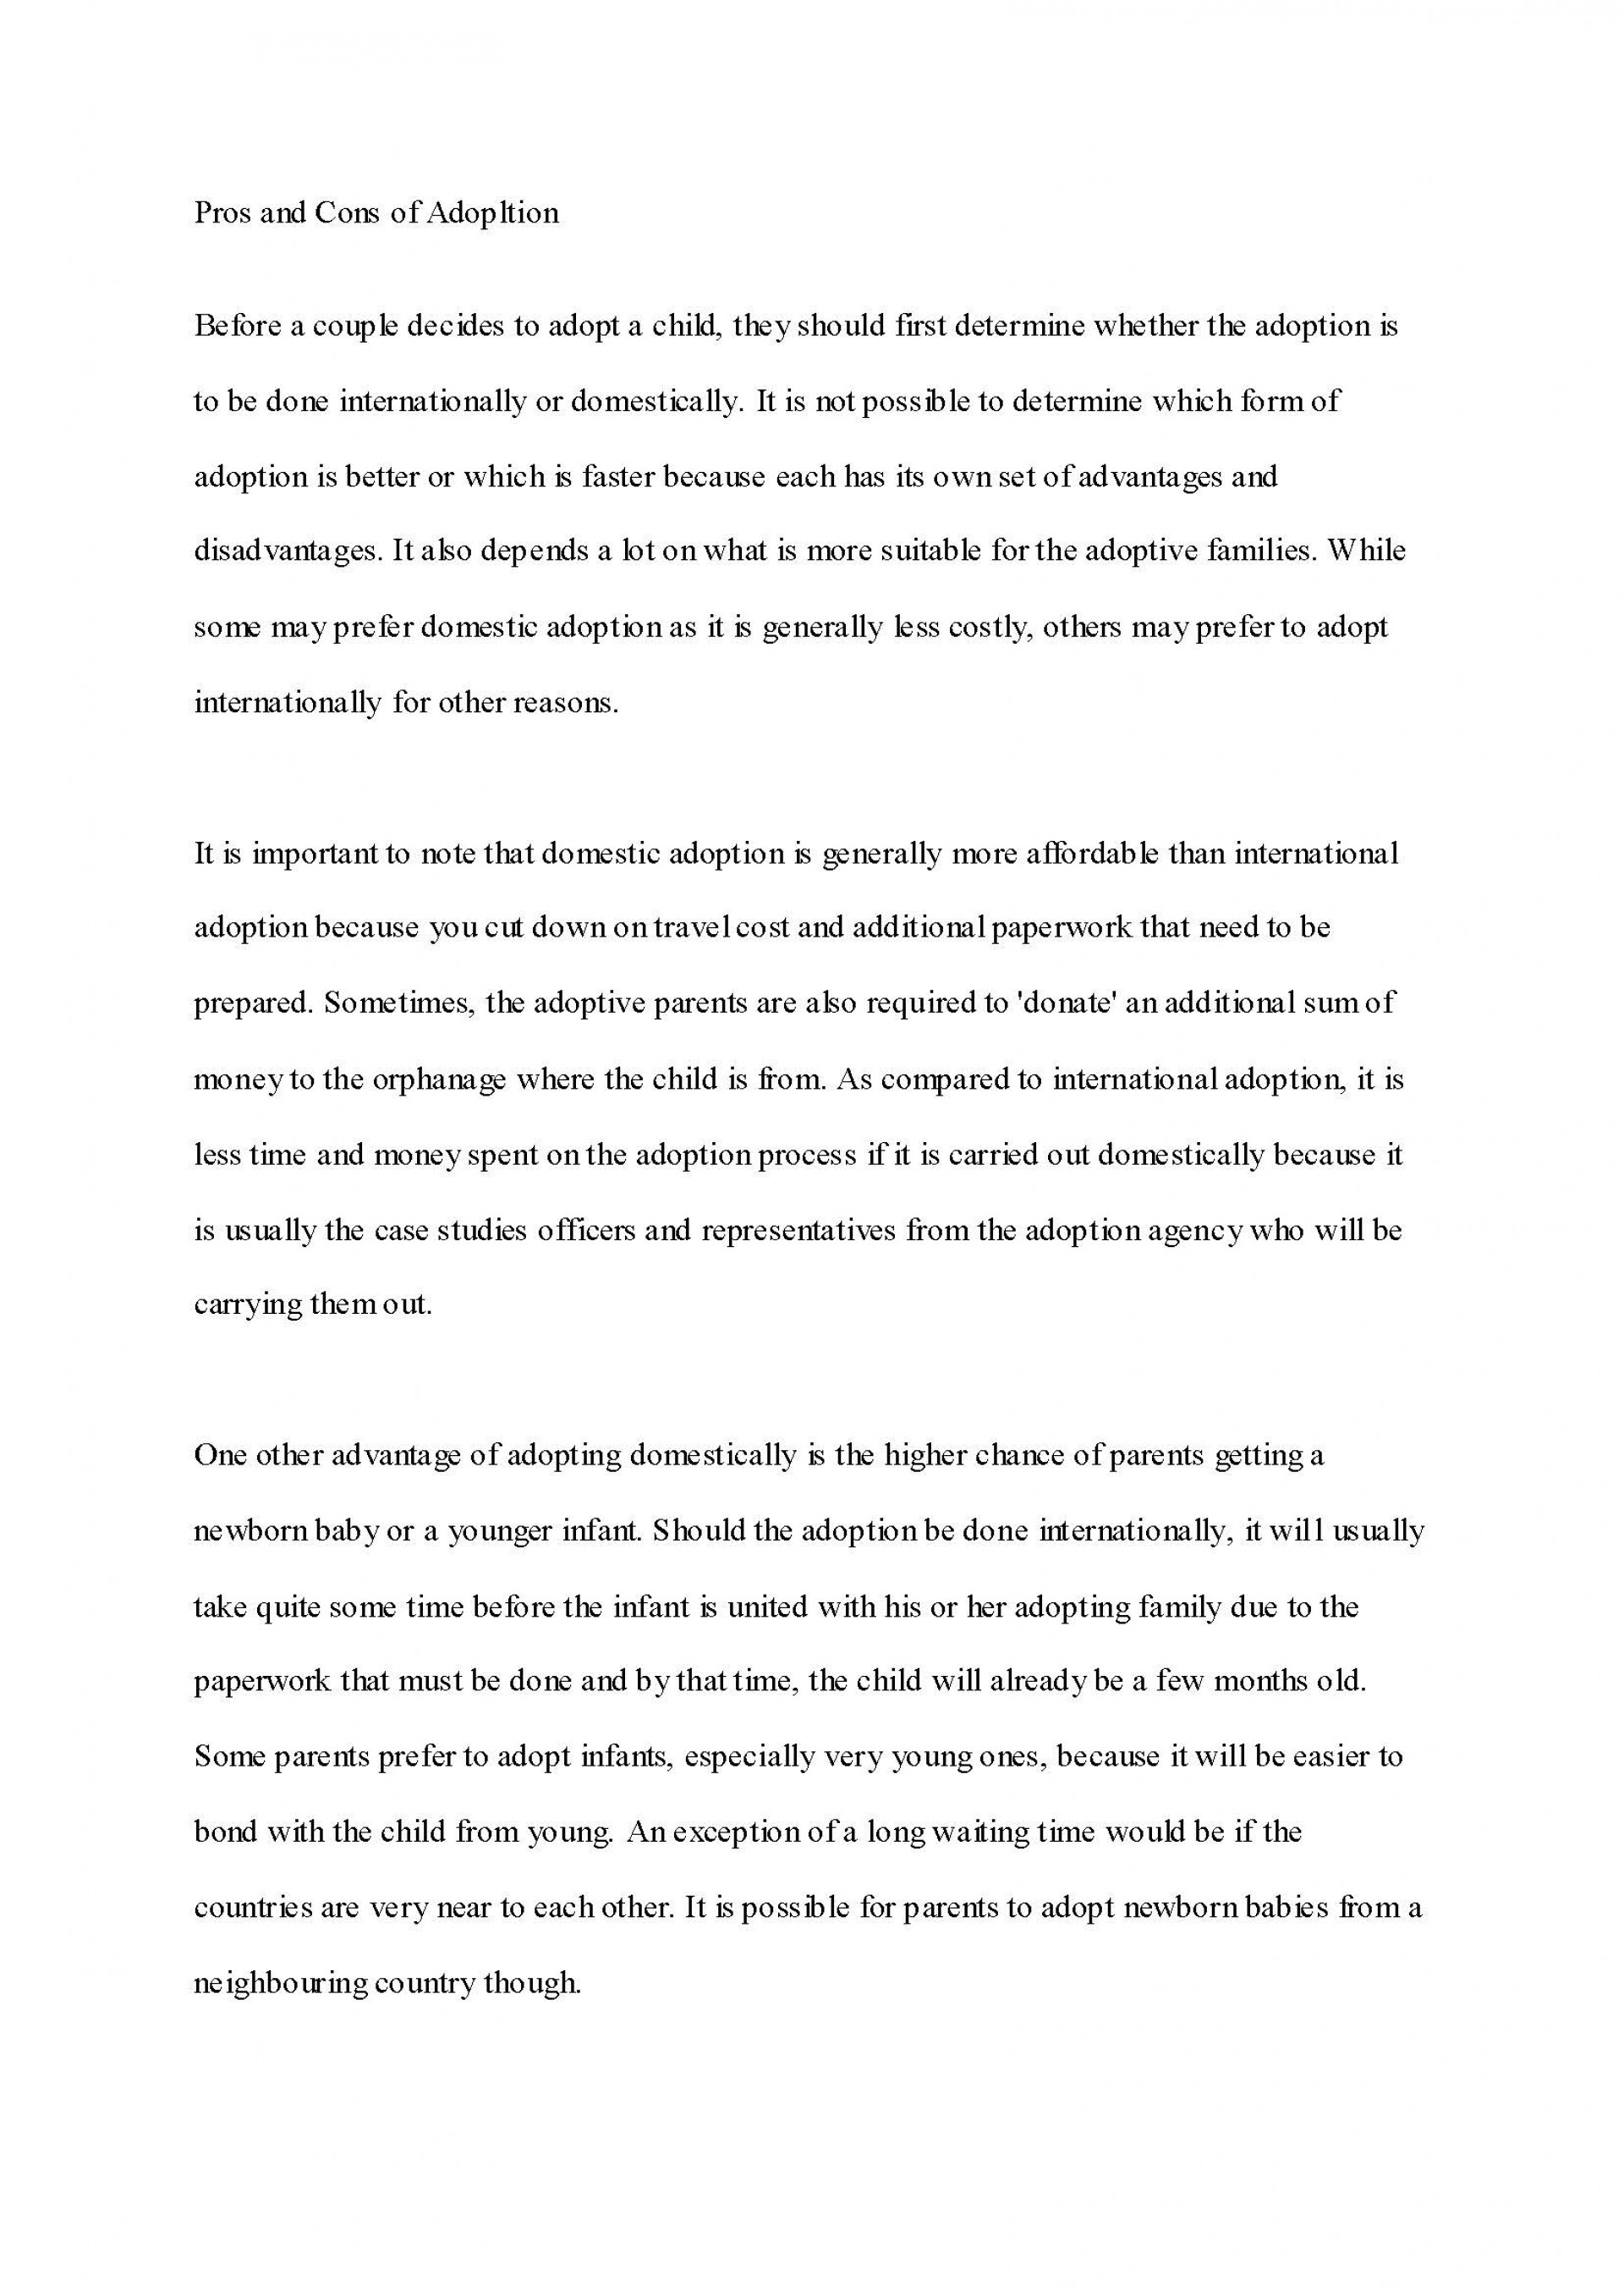 012 Adoption Essay Sample Example What Is Impressive A Literary About Theme Analysis 1920